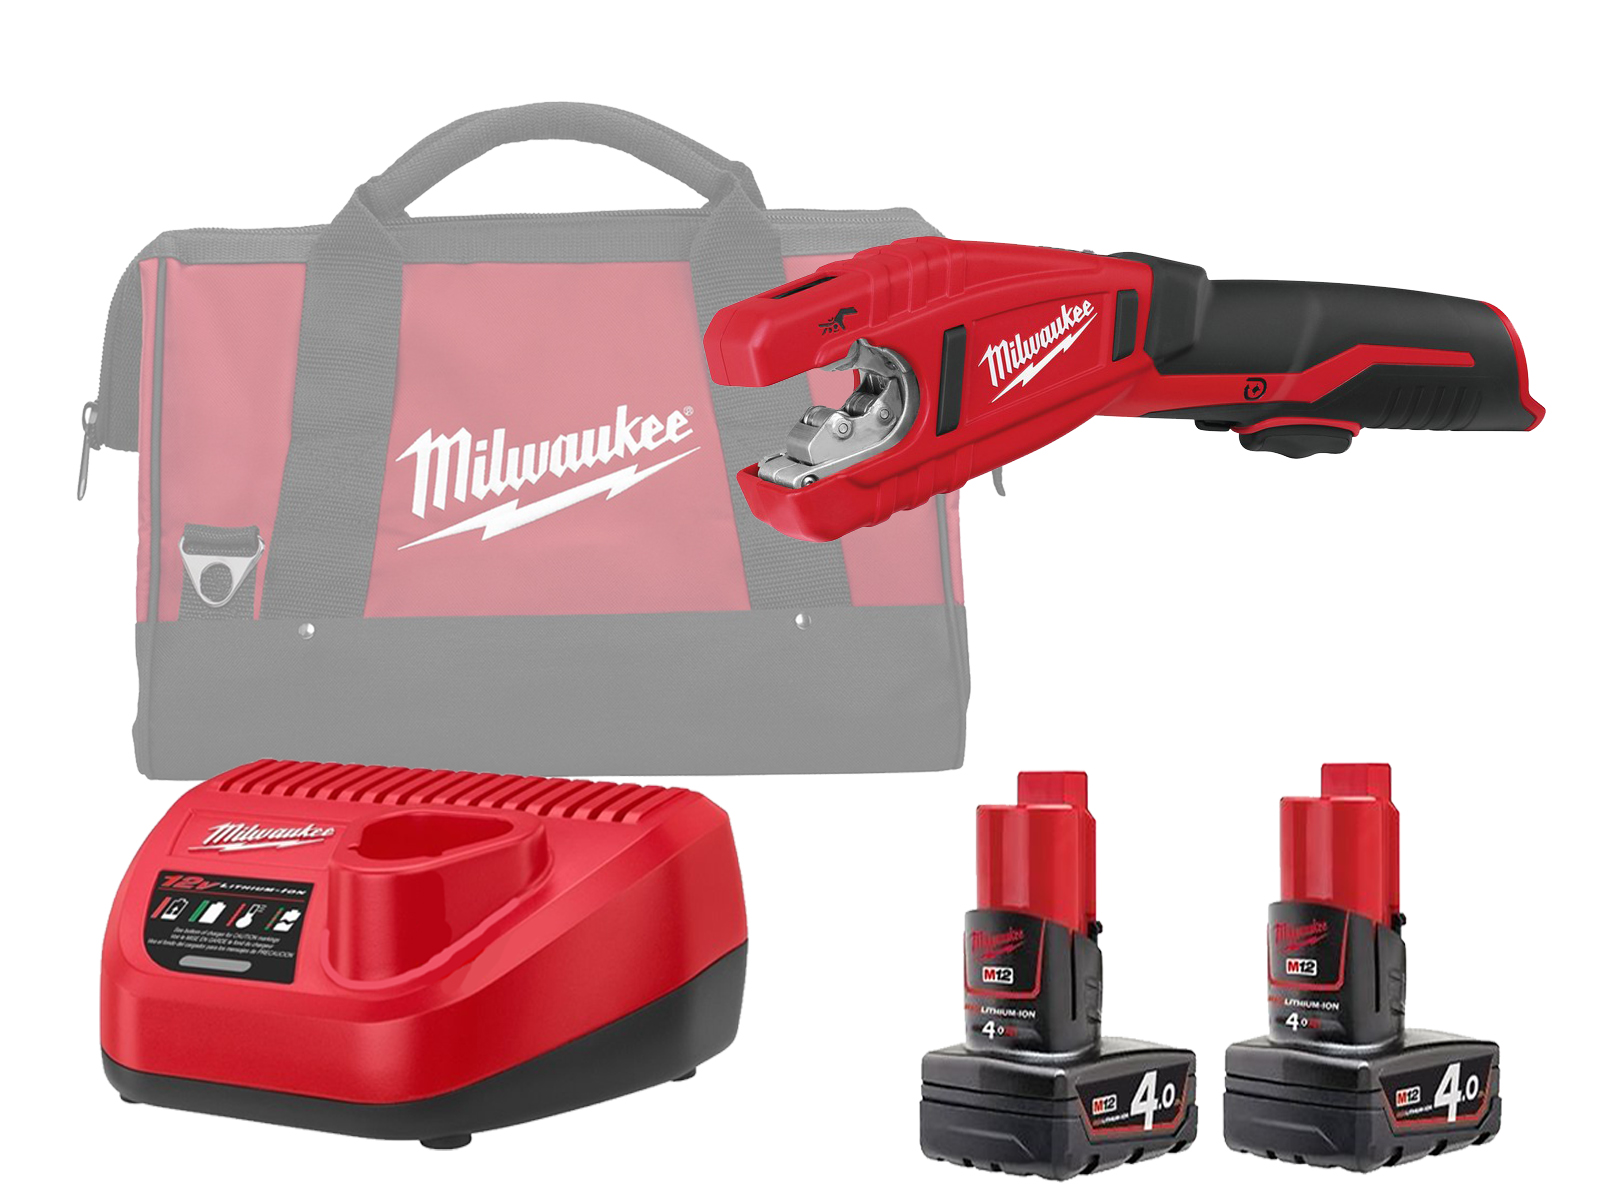 Milwaukee C12PC 12V Sub Compact Copper Pipe Cutter 12mm to 28mm - 4.0Ah Pack